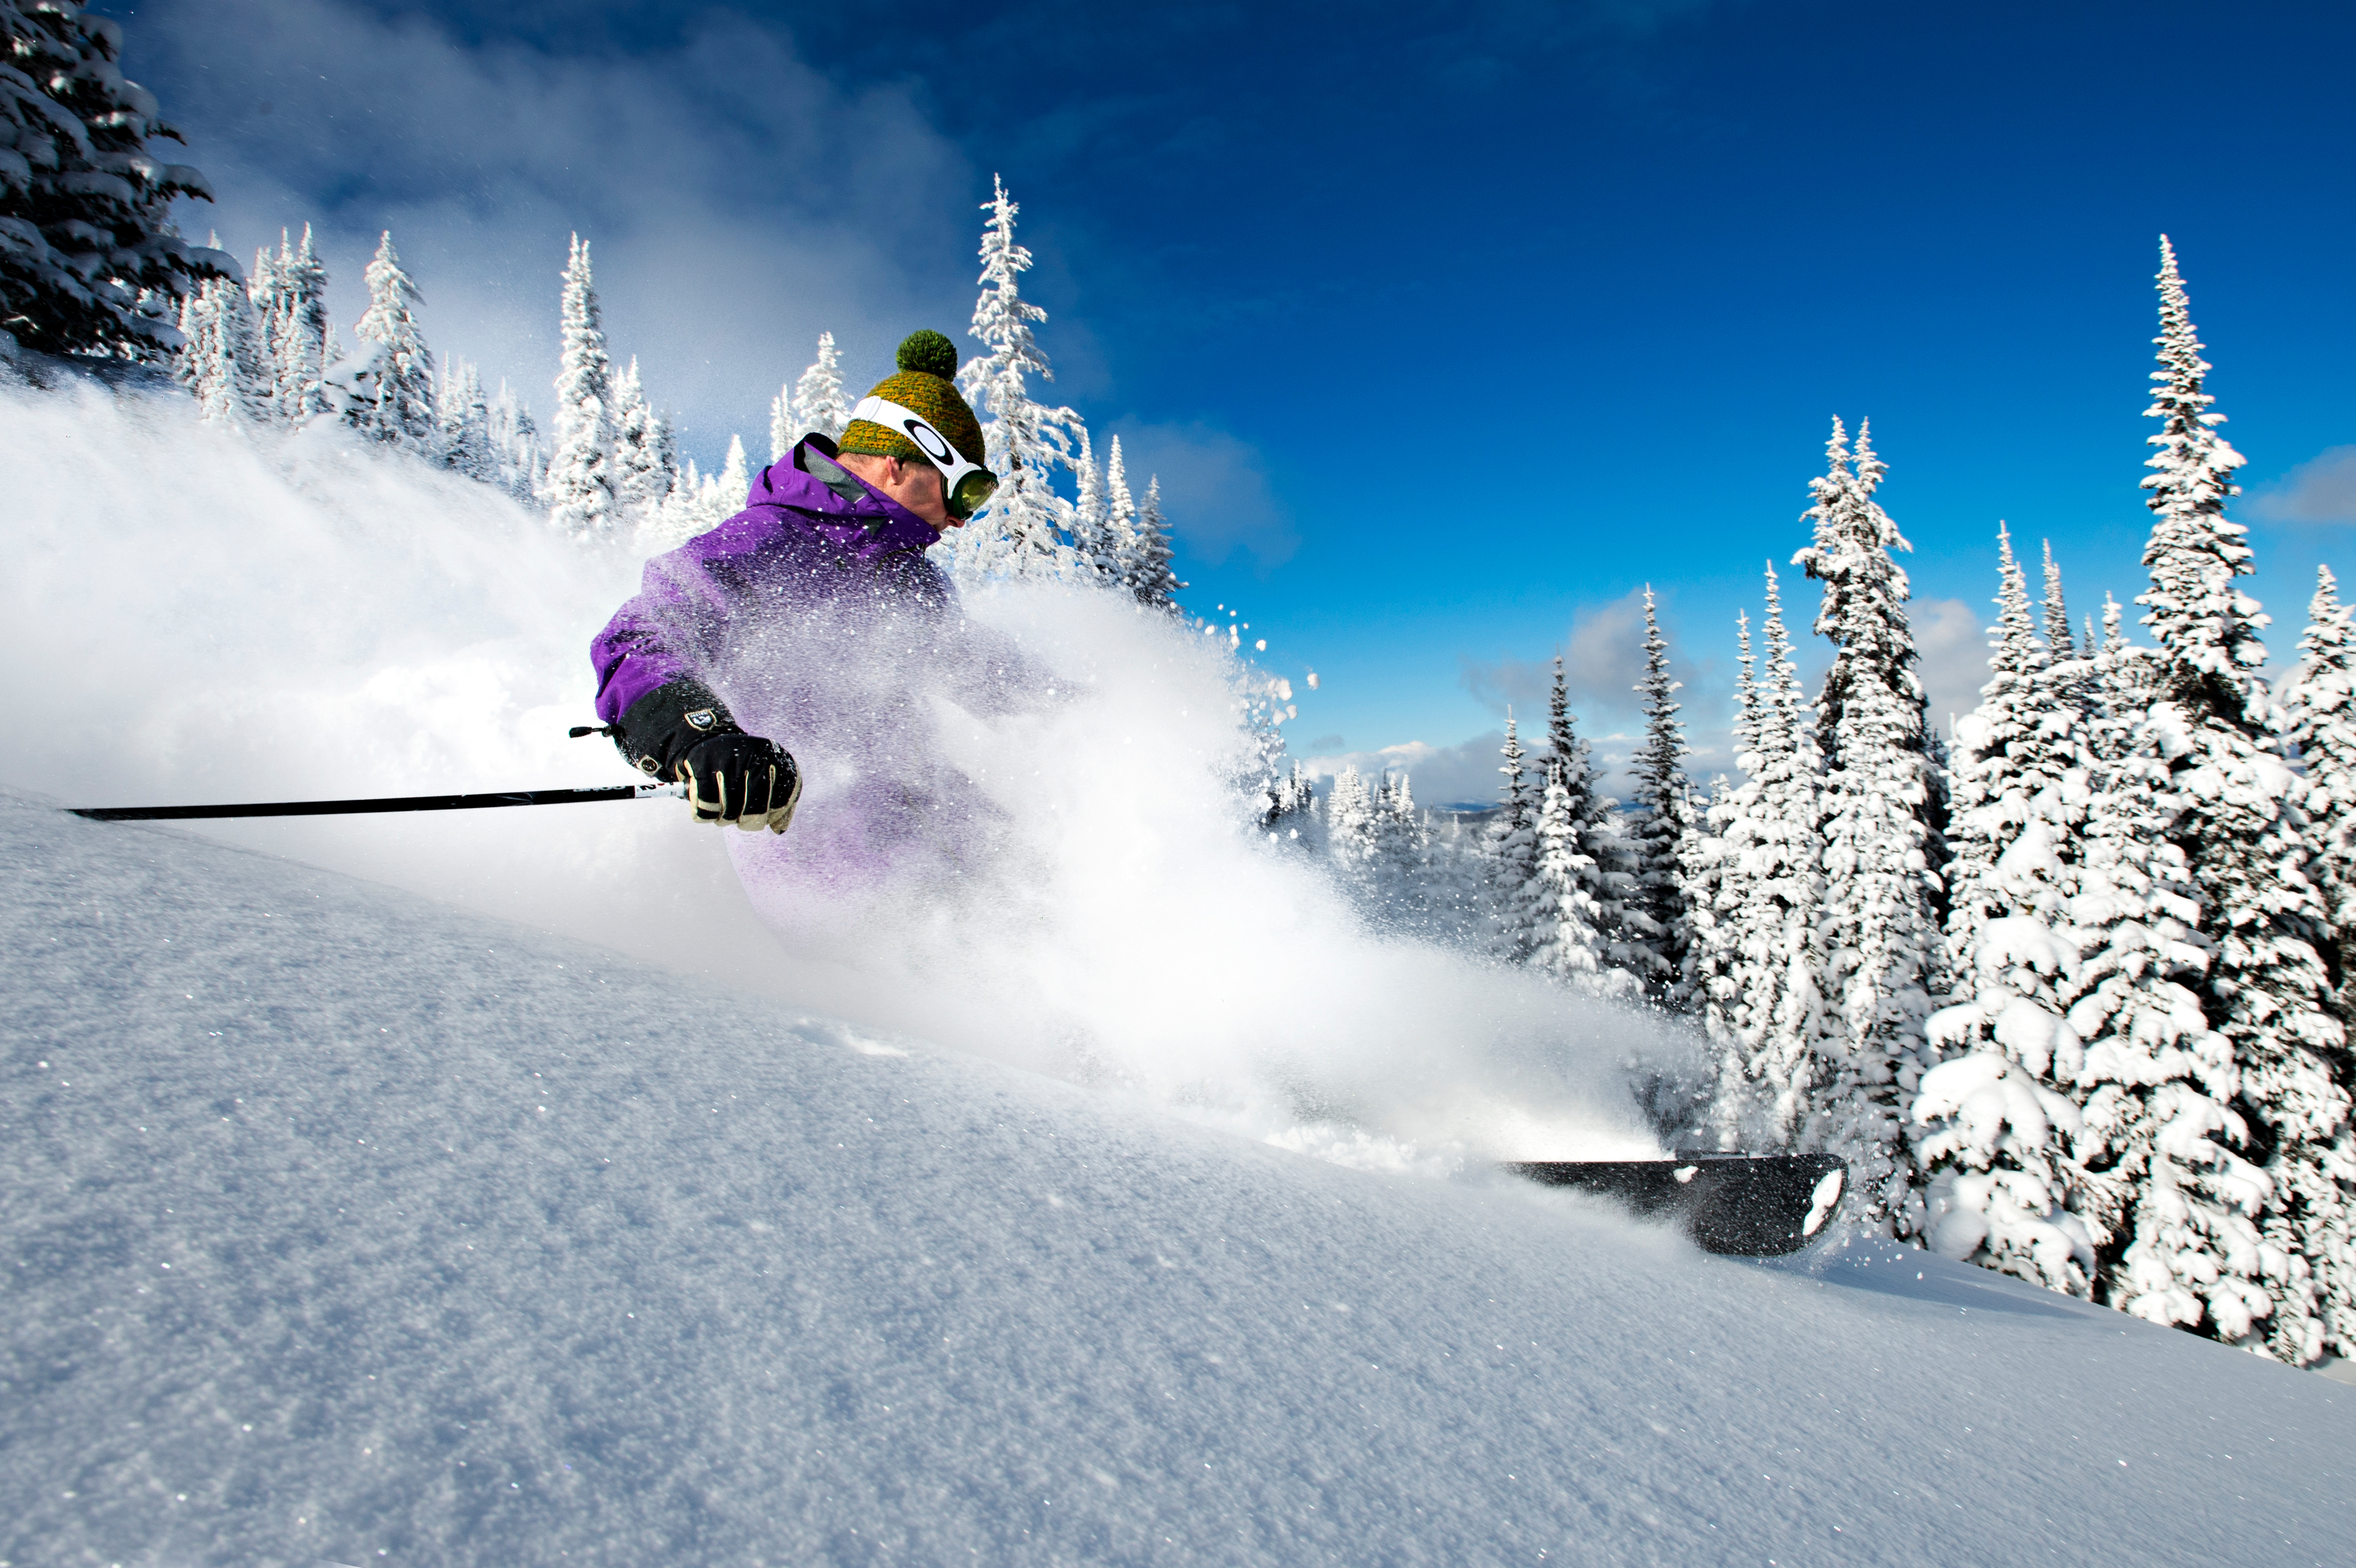 Sun Peaks/Skiing/Powder Trees